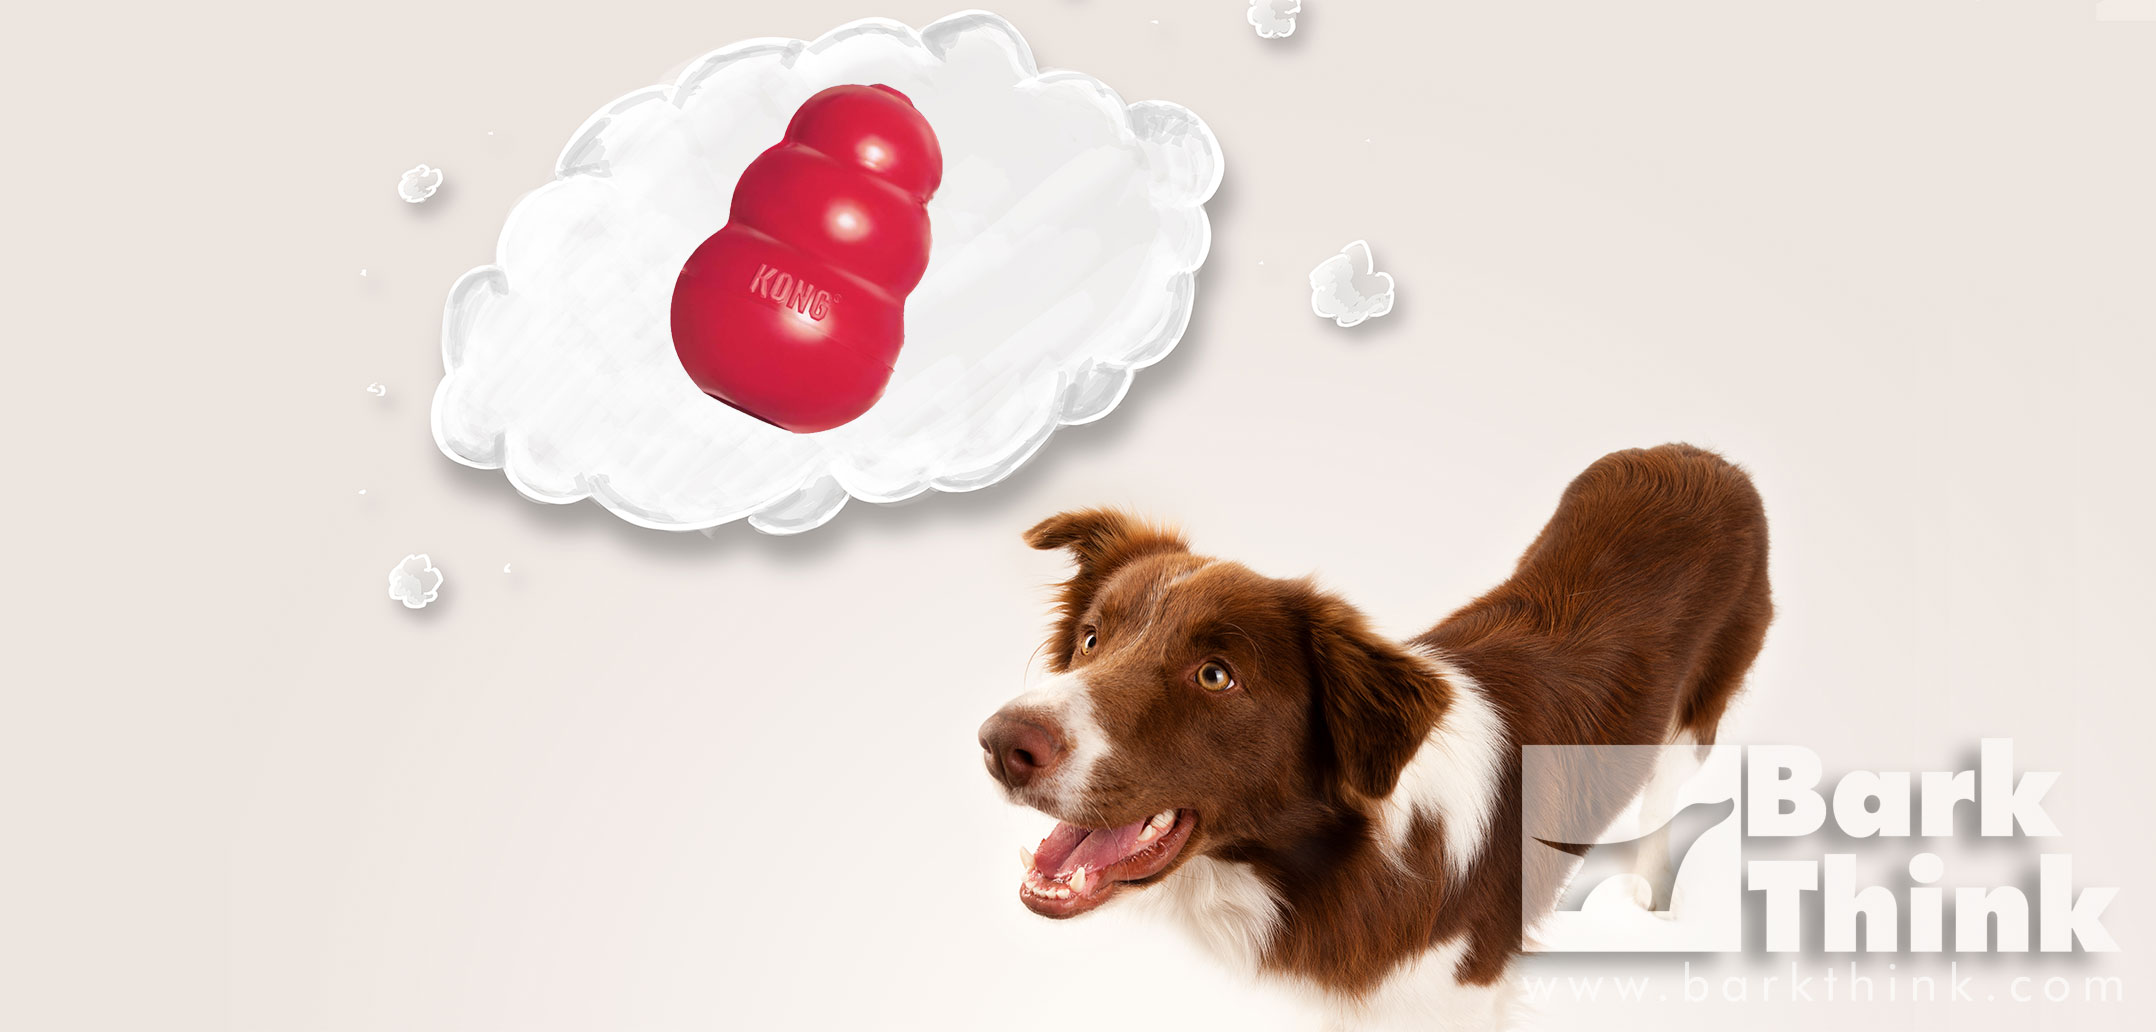 Nifty Over Ways To Fill Your Kong Get Over Ways To Fill Your Kong Bark Think How Often Should I Wash My Dog Reddit How Often Should I Wash My Dogs Paws bark post How Often Should I Wash My Dog